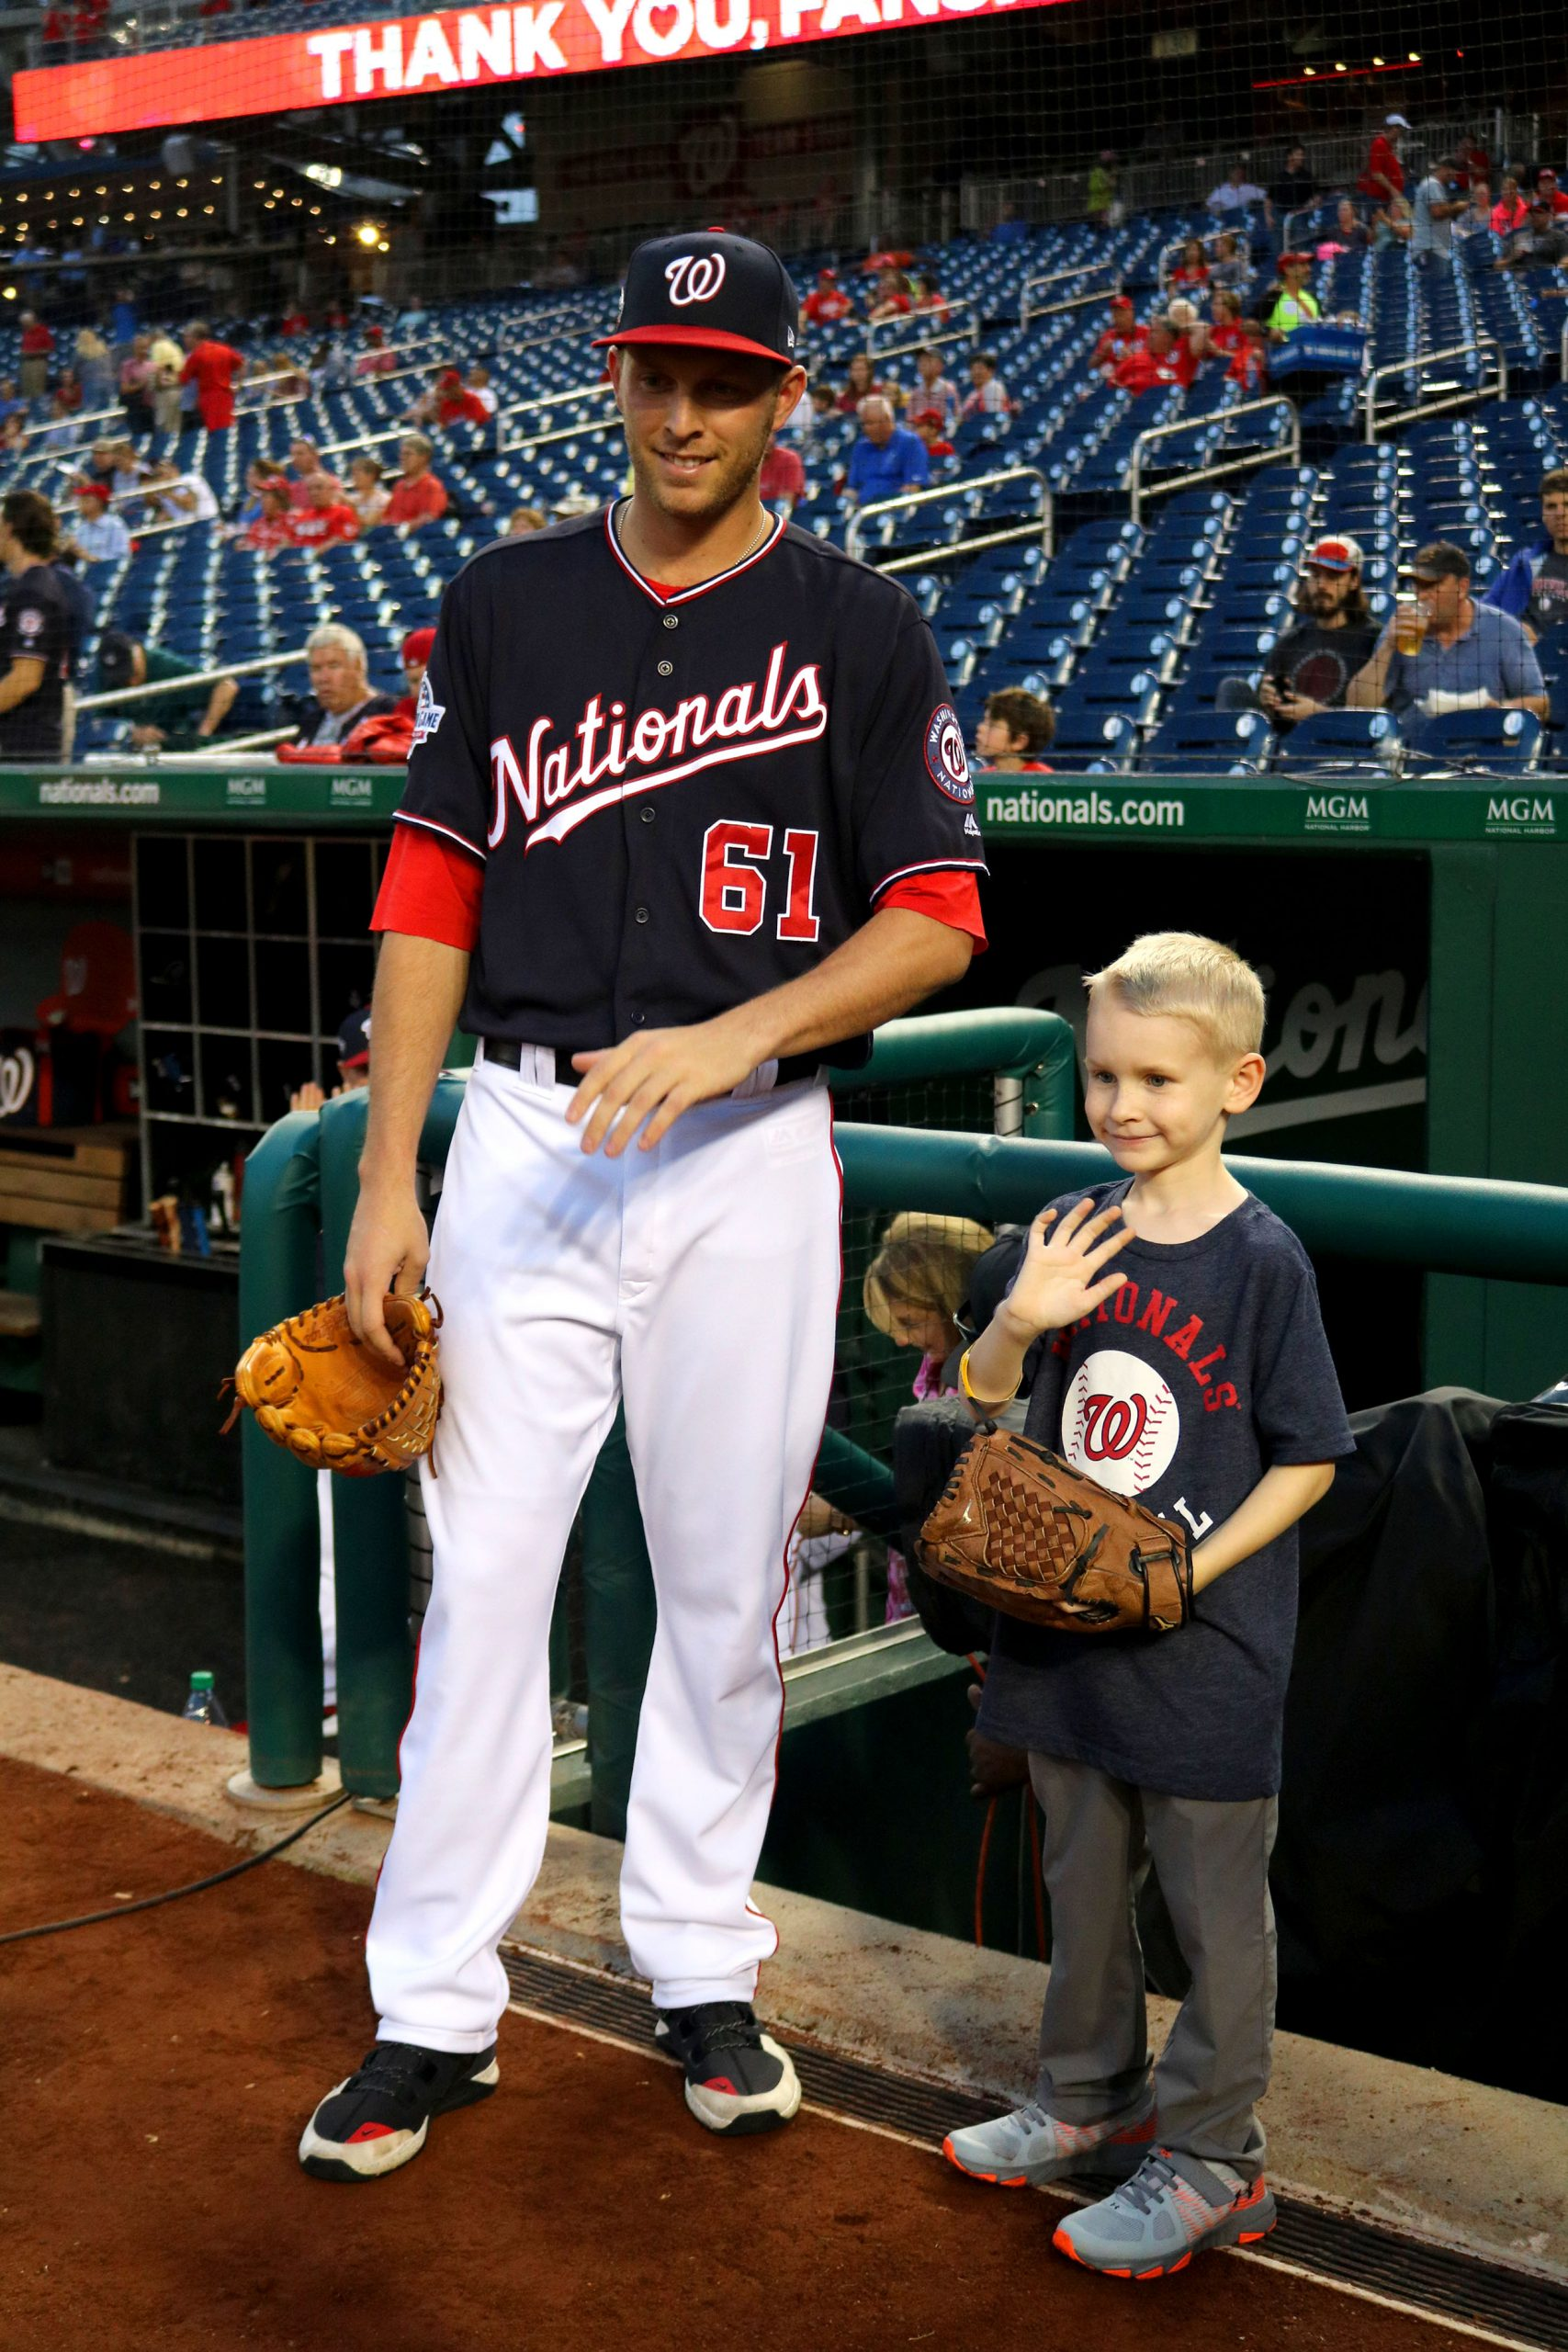 Abram and Nats pitcher Kyle McGowin